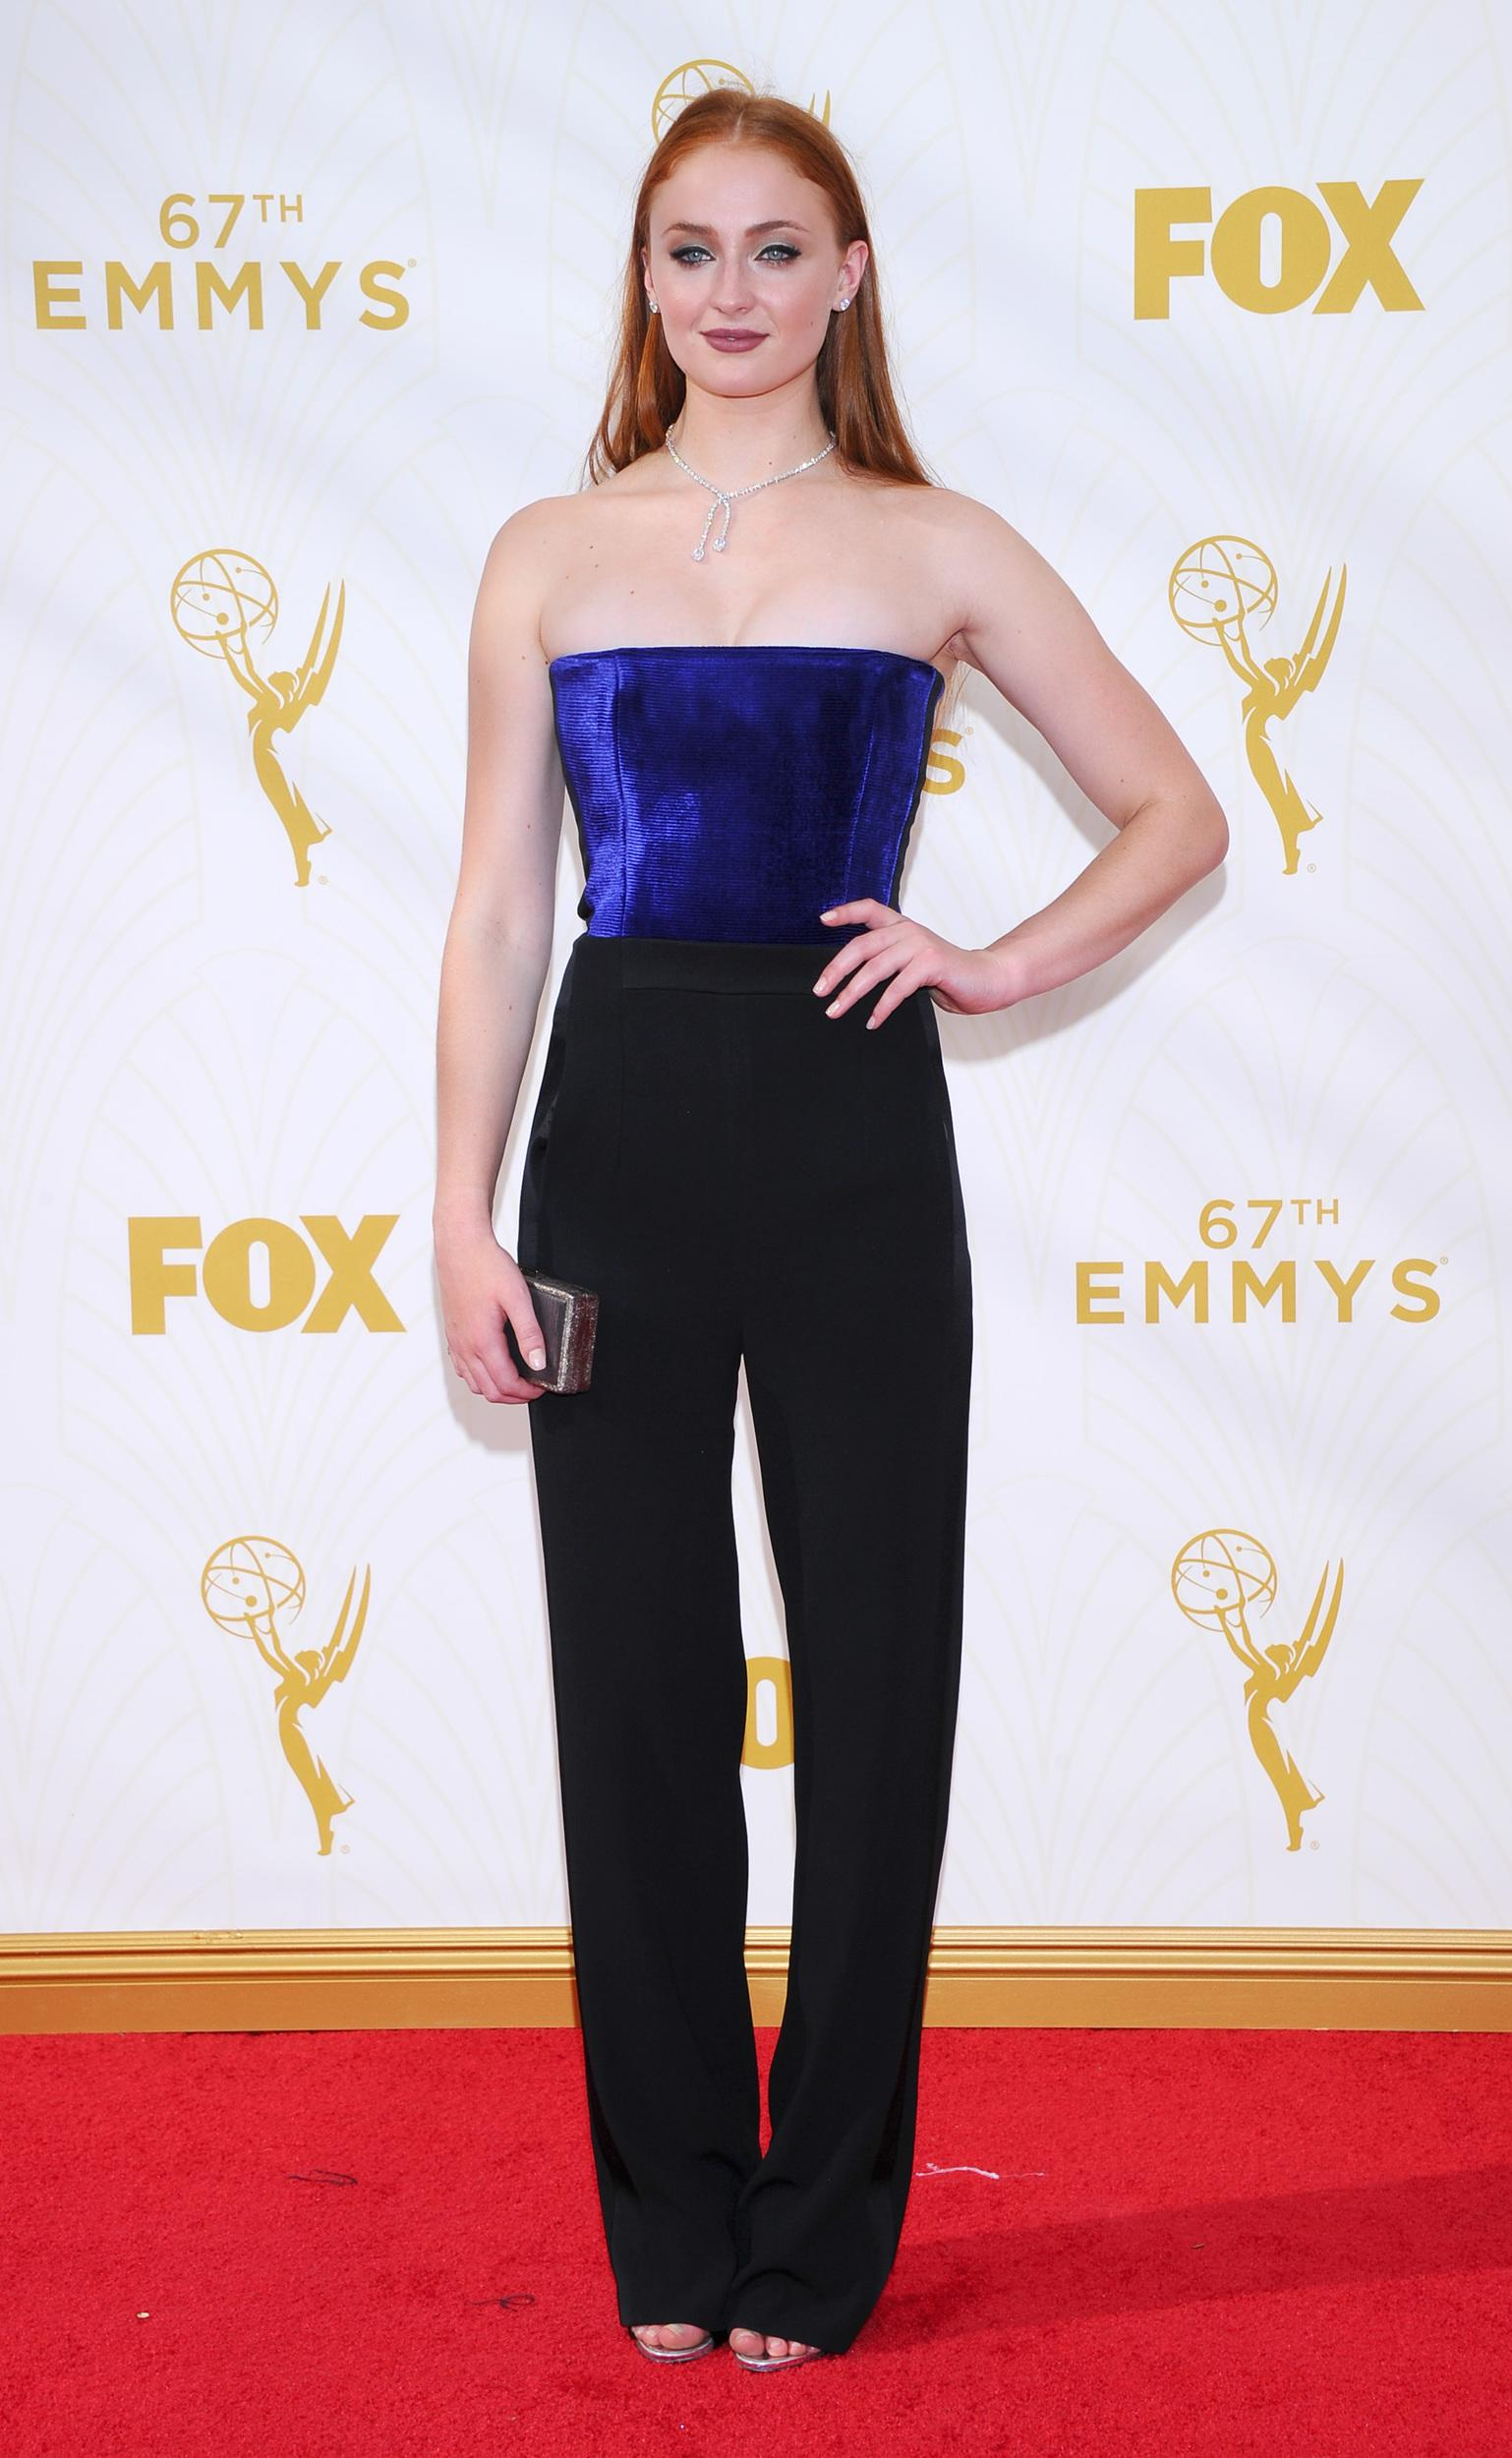 IMAGE DISTRIBUTED FOR THE TELEVISION ACADEMY - Sophie Turner arrives at the 67th Primetime Emmy Awards on Sunday, Sept. 20, 2015, at the Microsoft Theater in Los Angeles. (Photo by Vince Bucci/Invision for the Television Academy/AP Images)